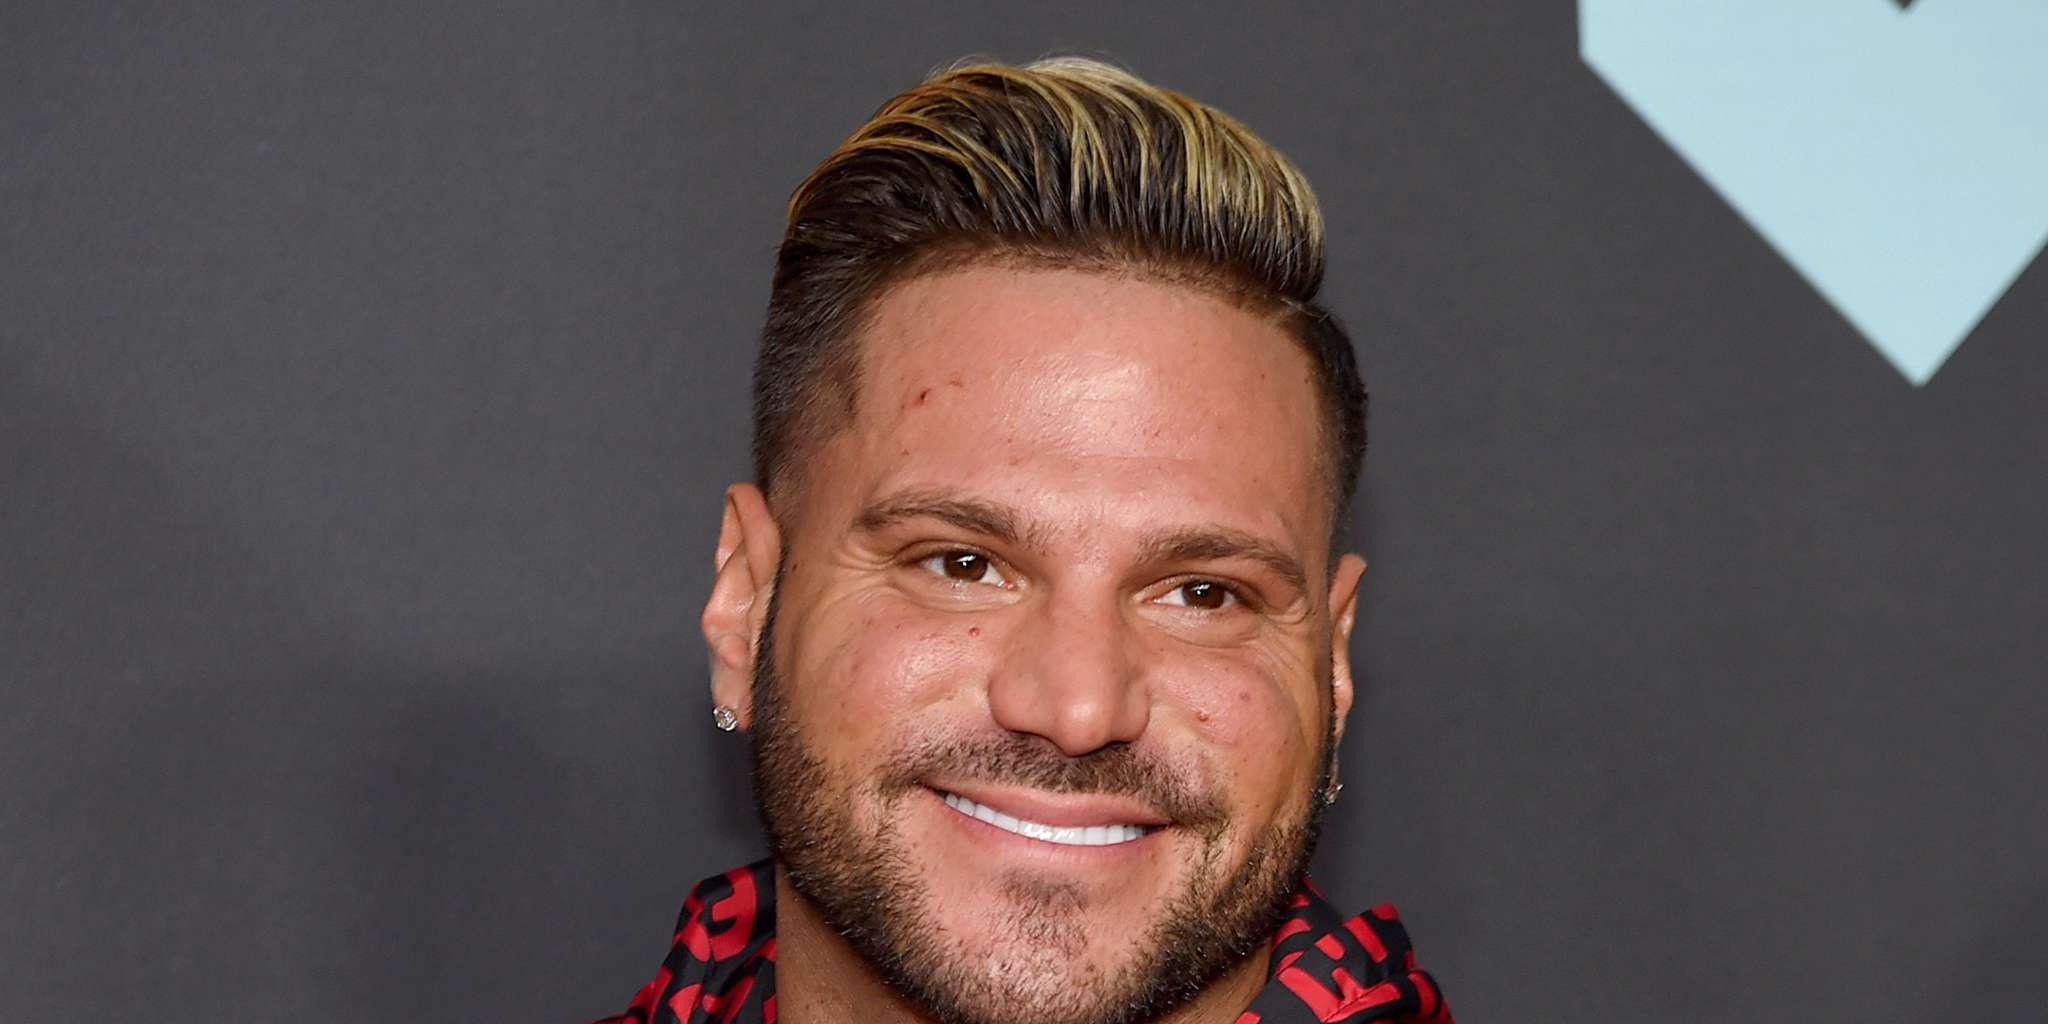 Ronnie Ortiz-Magro Breaks His Silence After Arrest